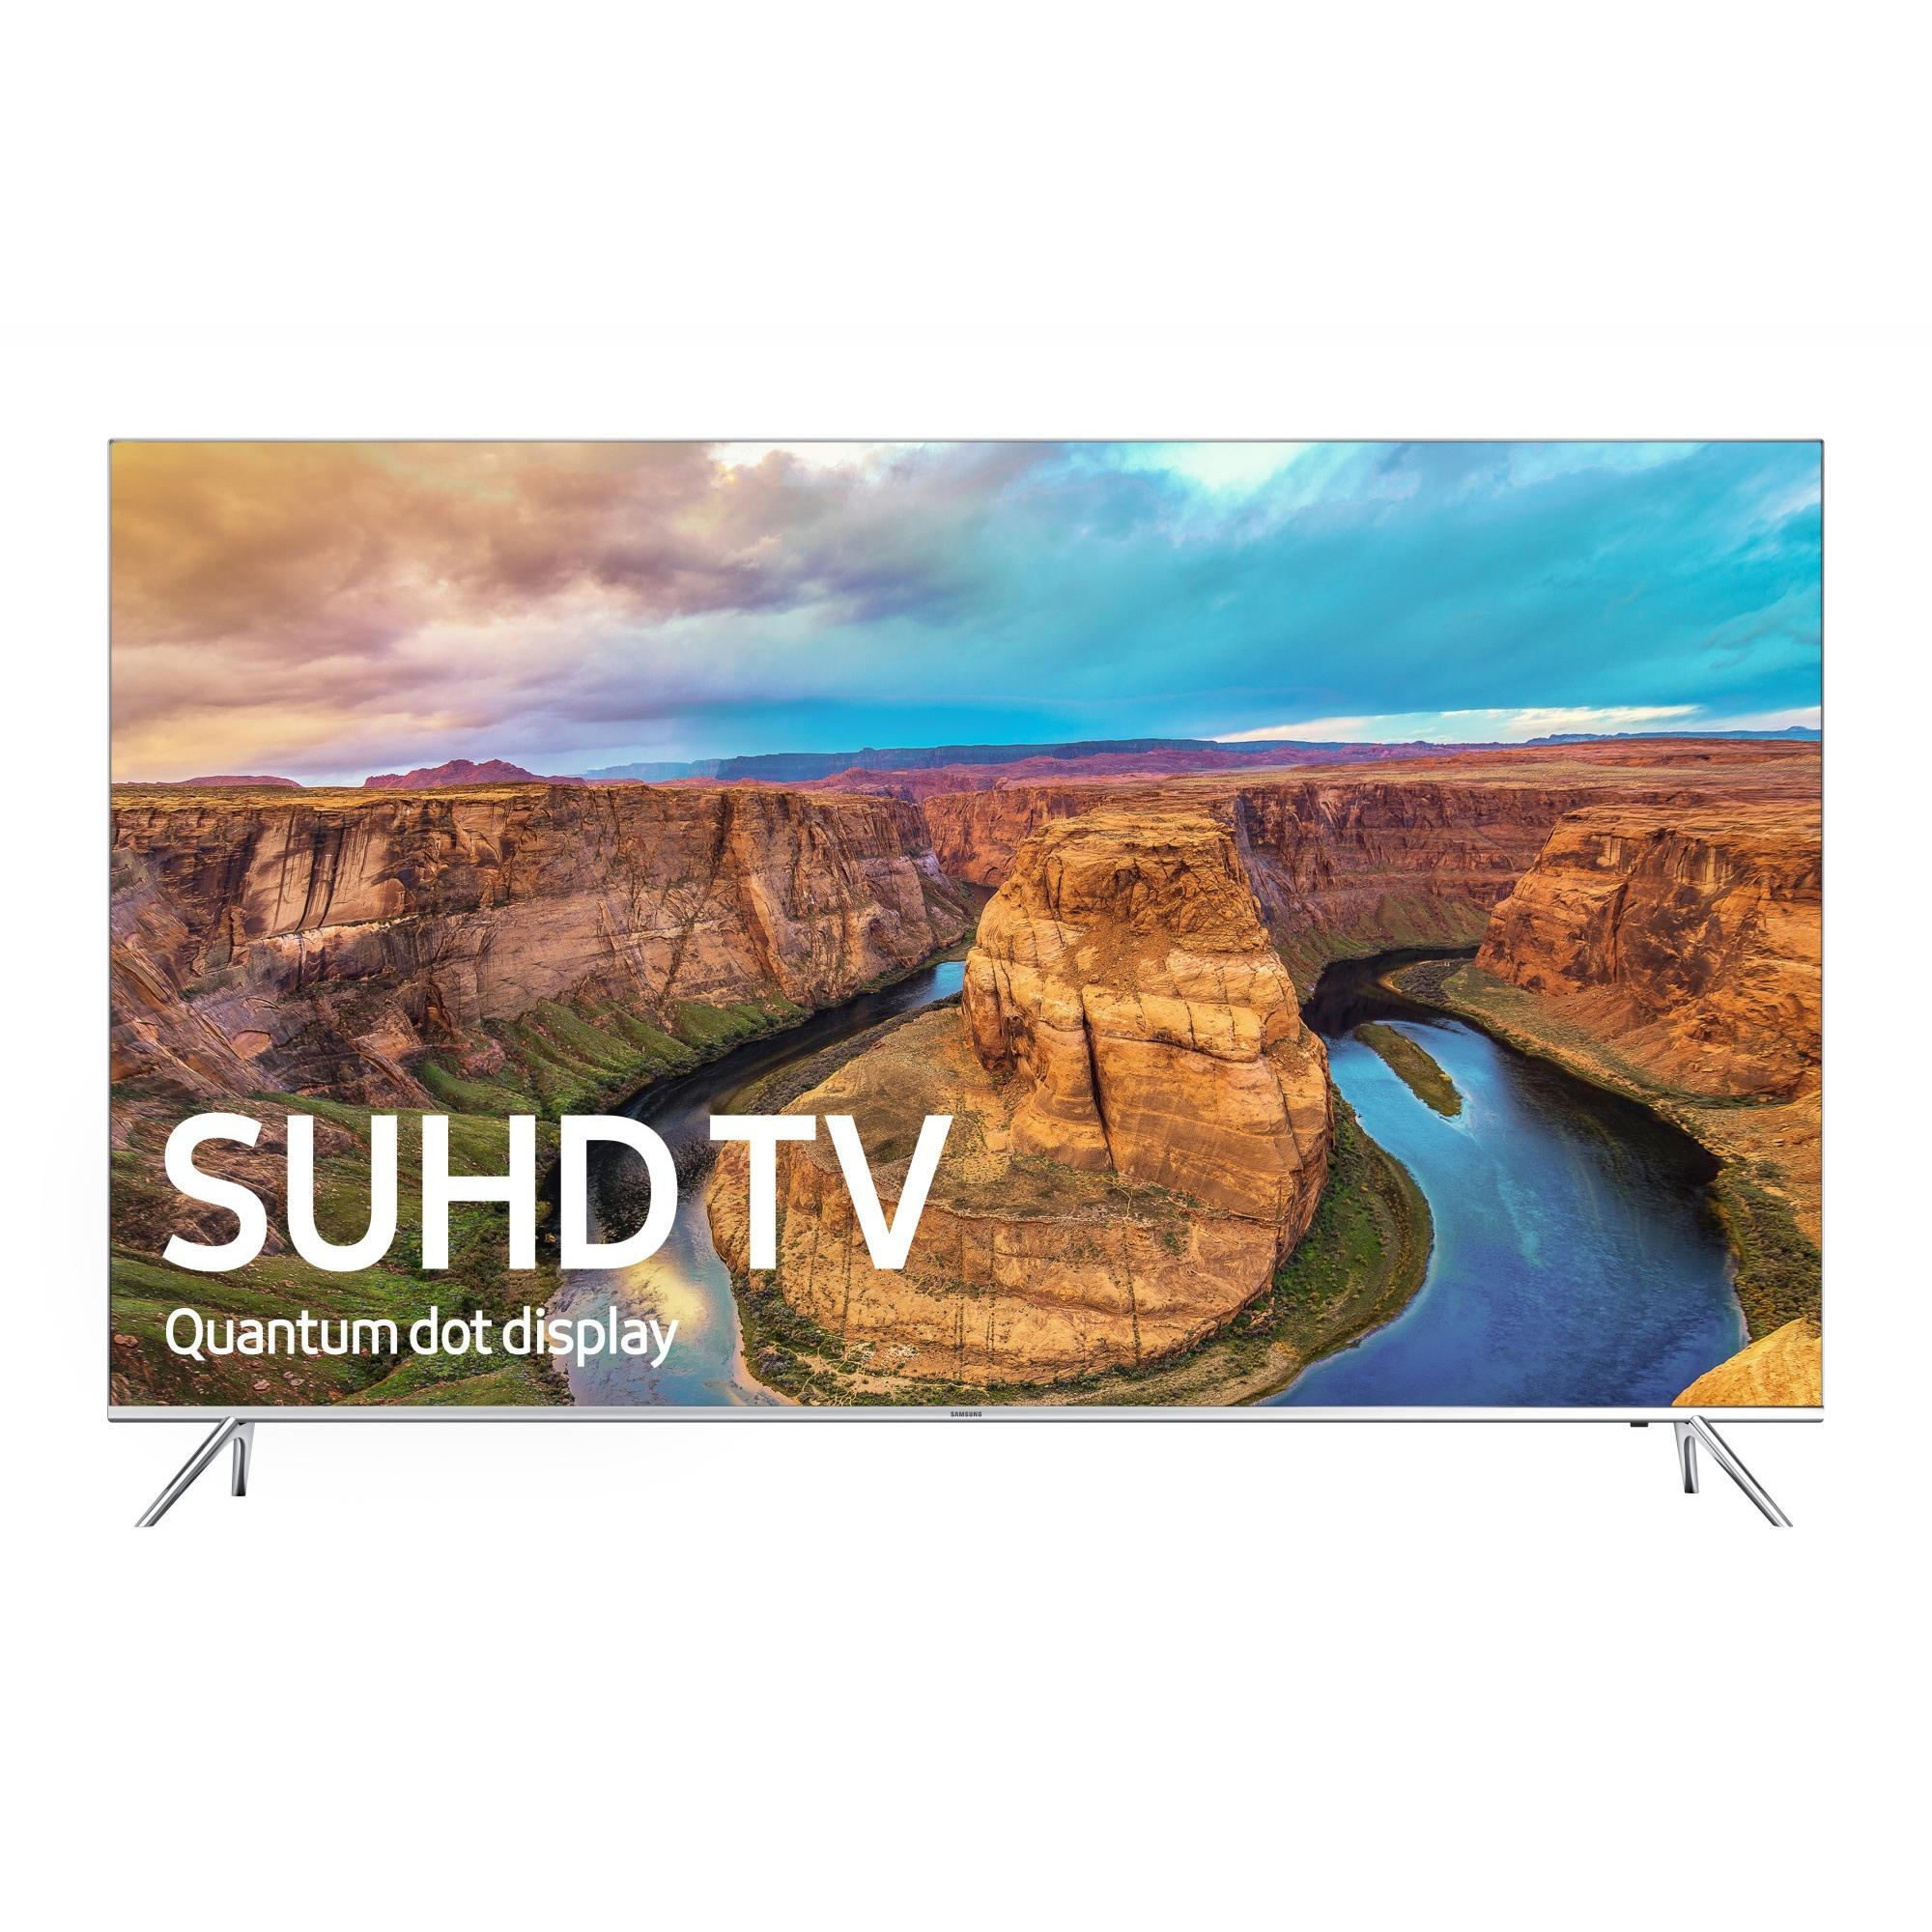 "SAMSUNG 49"" 8000 Series - 4K SUHD Smart LED TV - 2160p, 240MR (Model#: UN49KS8000)"